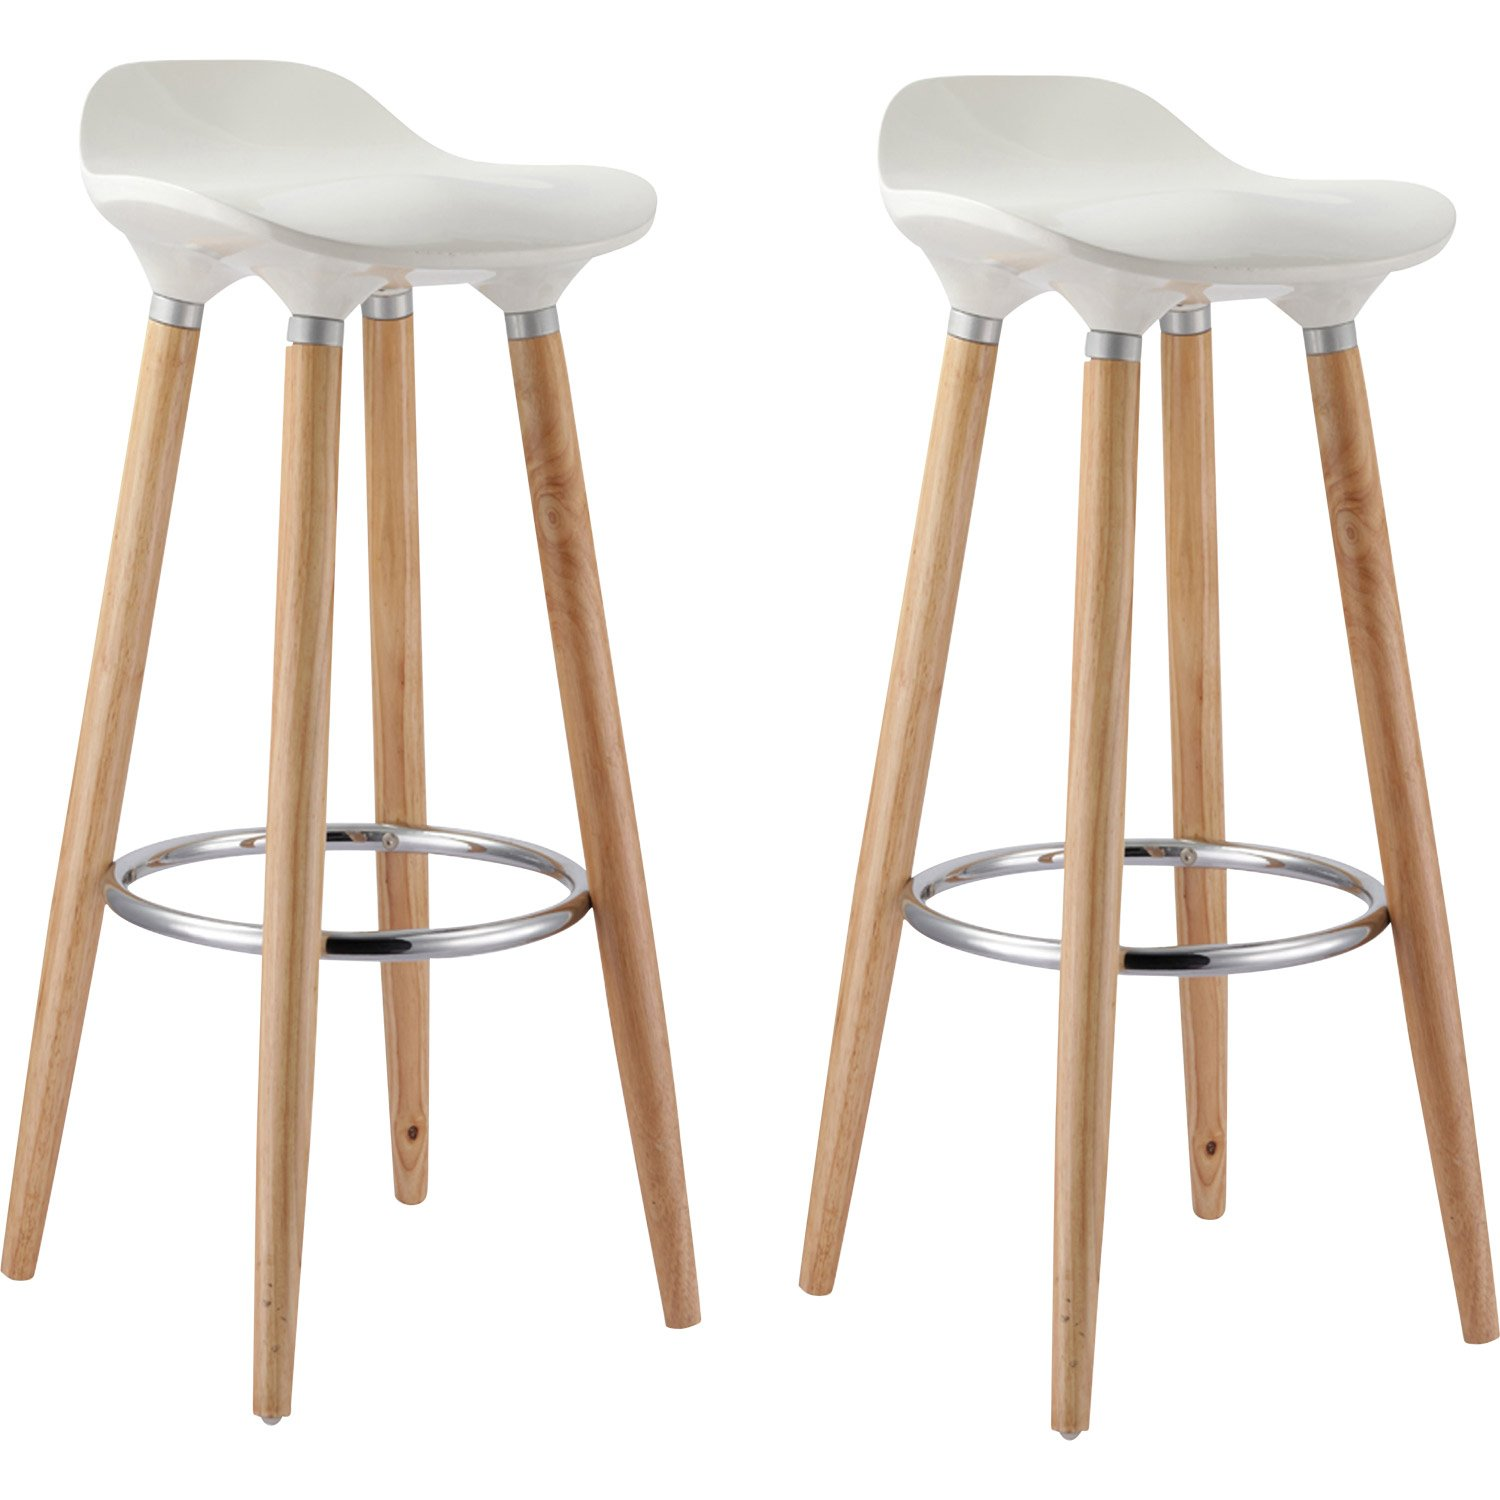 tabouret de bar oslo blanc mobilier design d coration d. Black Bedroom Furniture Sets. Home Design Ideas